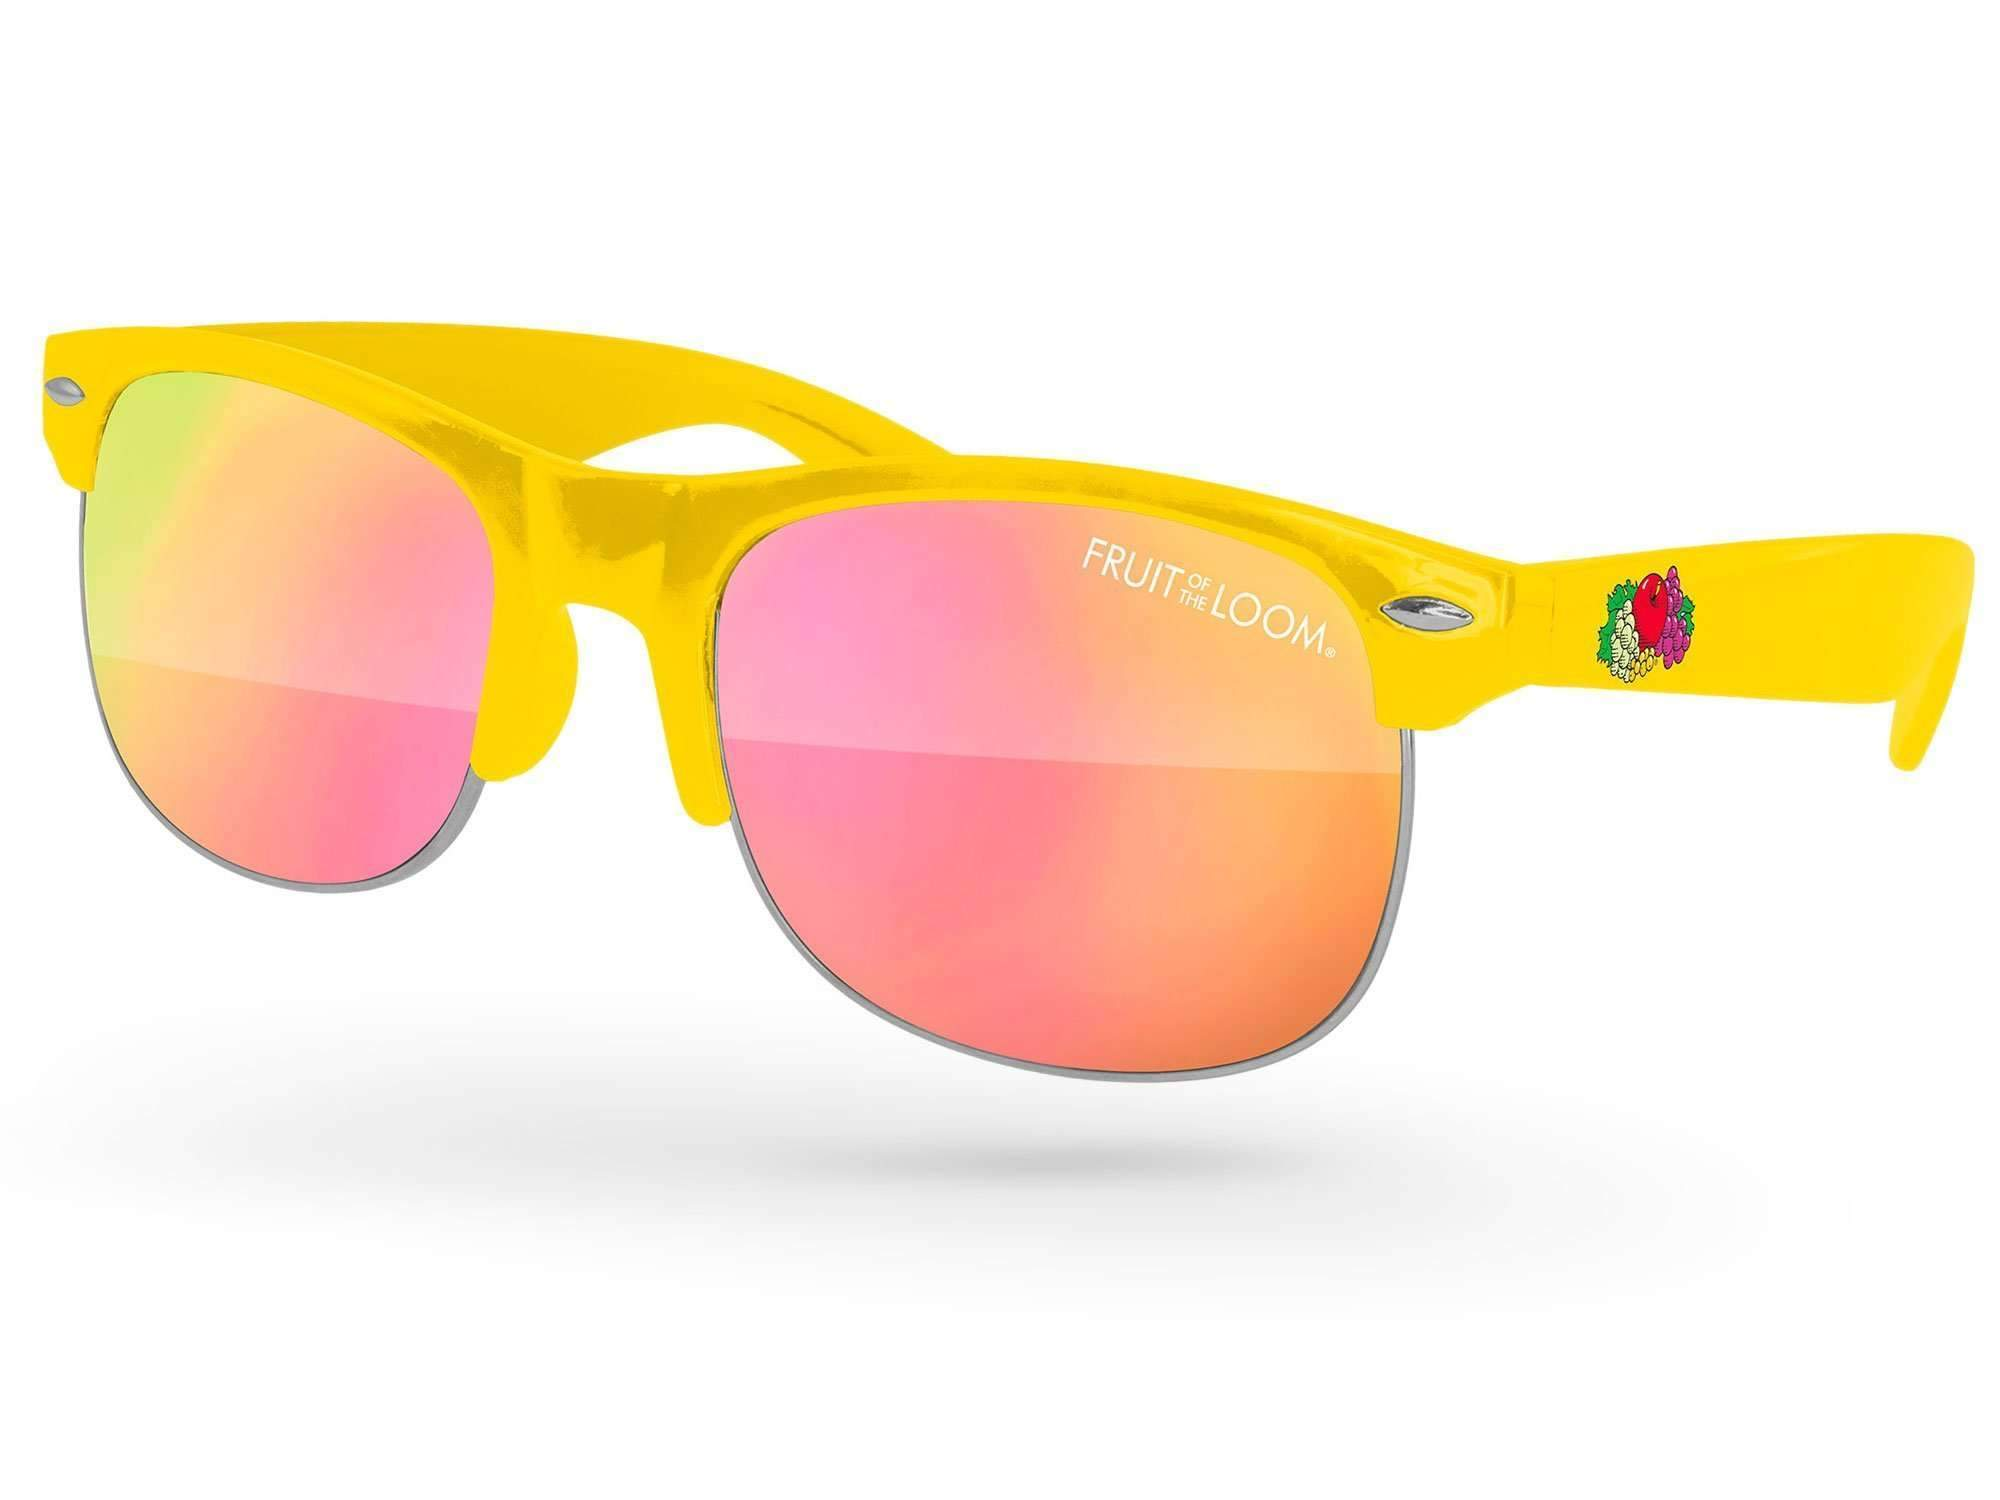 CM520 - Club Mirror Promotional Sunglasses w/ 1-color lens imprint & full-color temple imprint